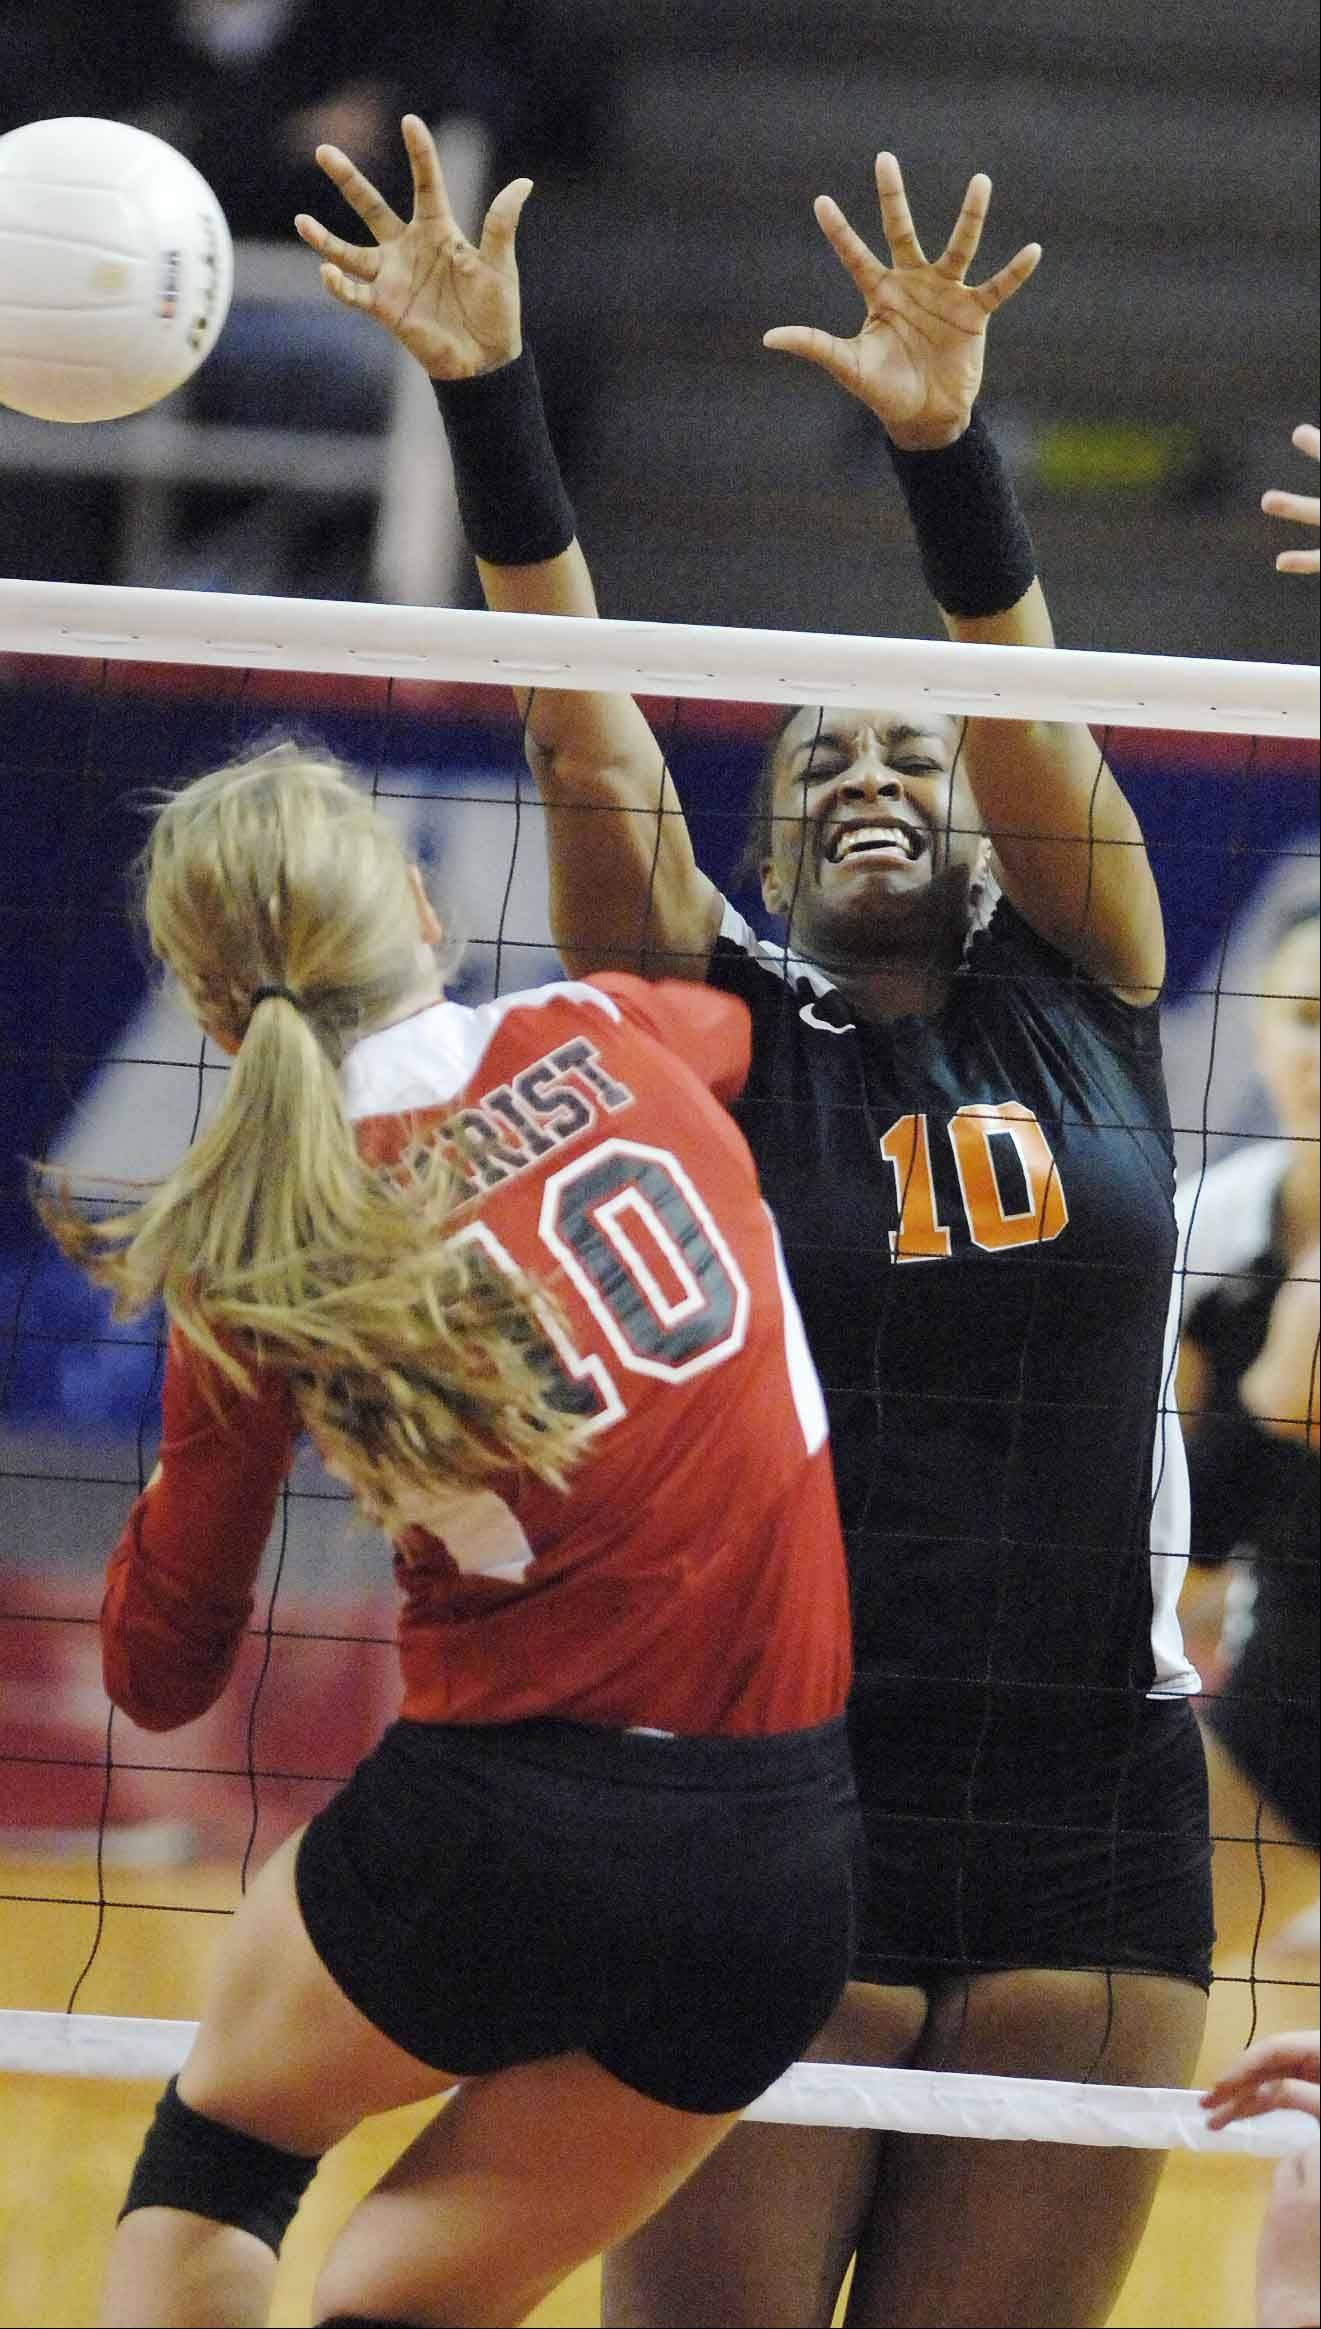 Nicole Lambert of St. Charles goes up for a block during the St. Charles East vs. Marist game Saturday.